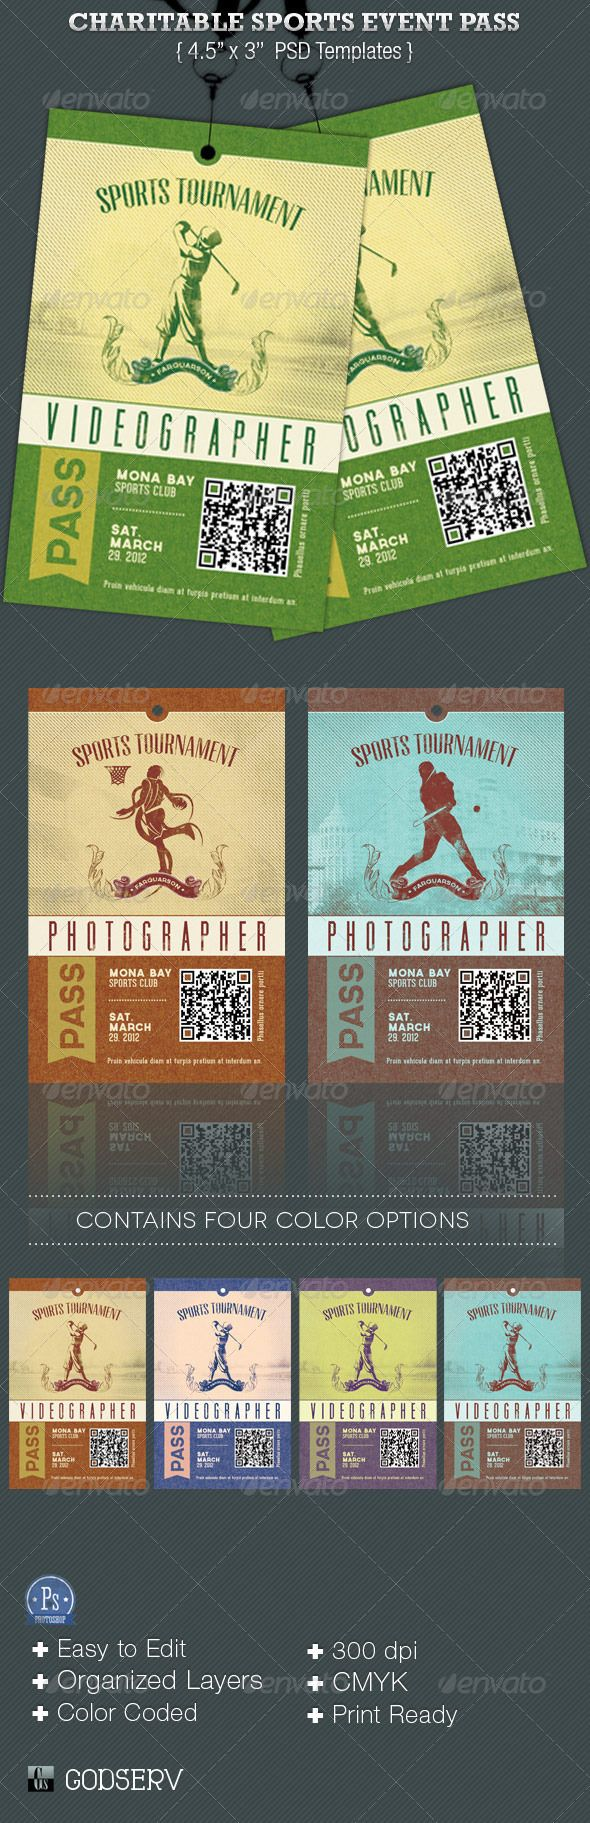 Charitable Sports Events Pass Templates are for sports